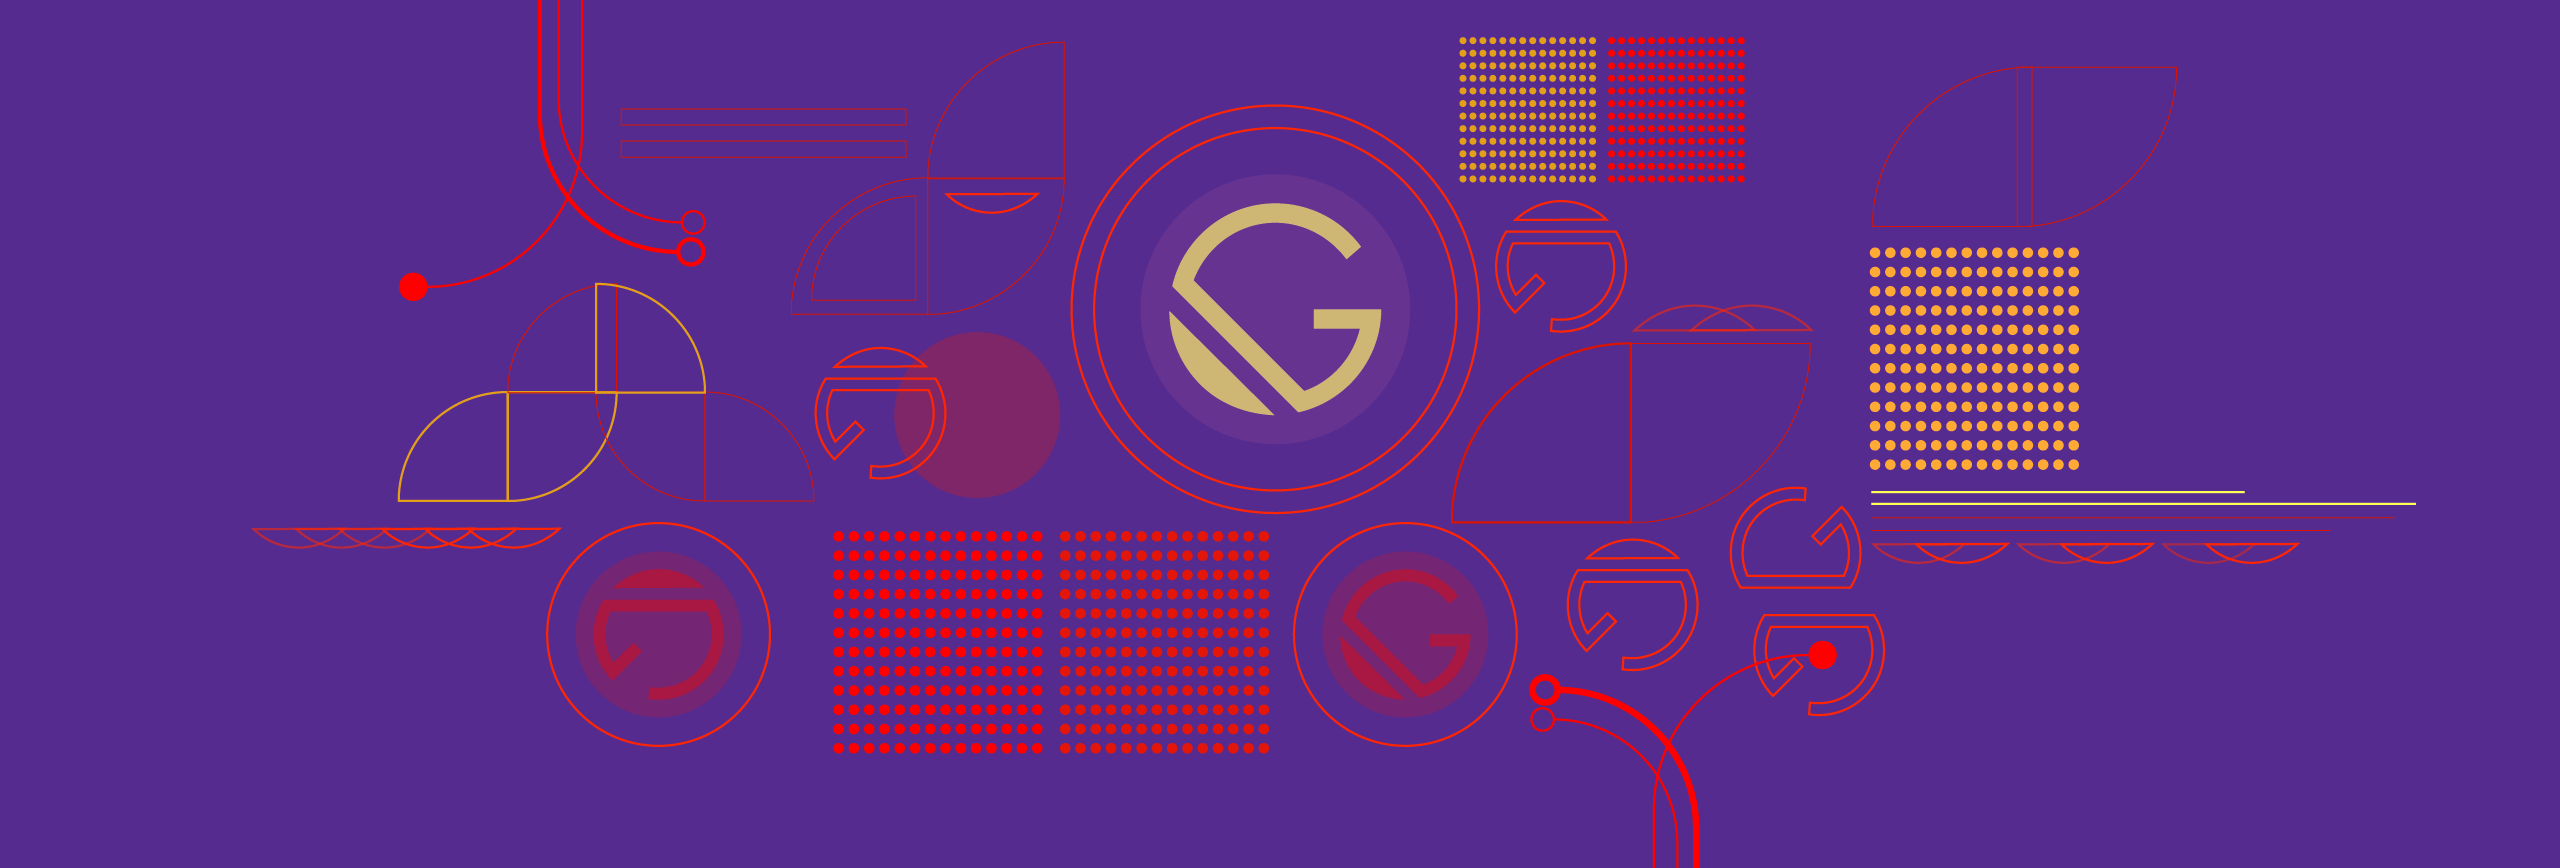 Gatsby and the new era of site generators